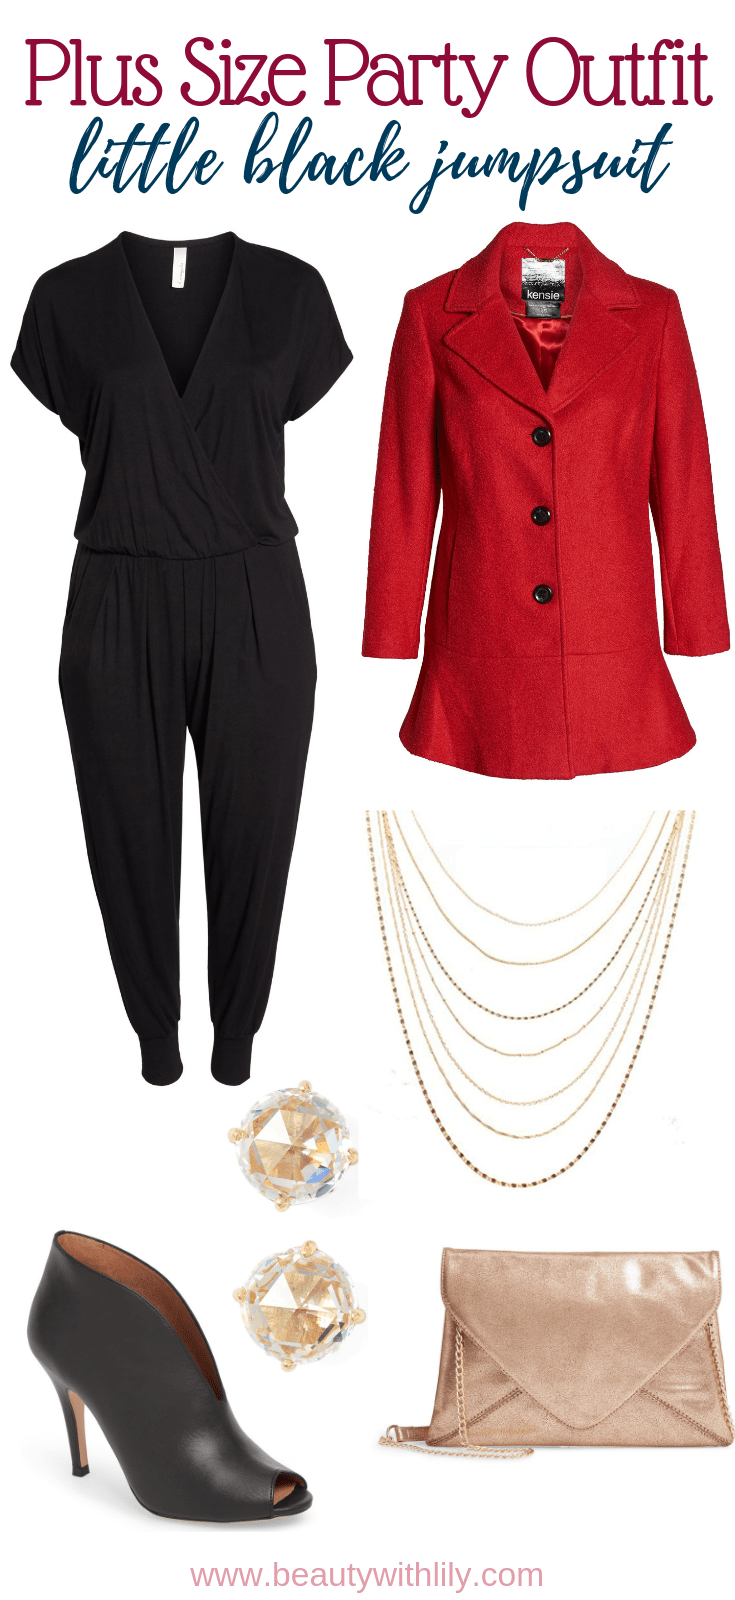 Holiday Outfit Inspiration // Holiday Party Outfits // Winter Outfits // Winter Fashion // Plus Size Winter Outfits // Plus Size Fashion // Plus Size Outfit Inspiration // Plus Size Party Outfit | Beauty With Lily